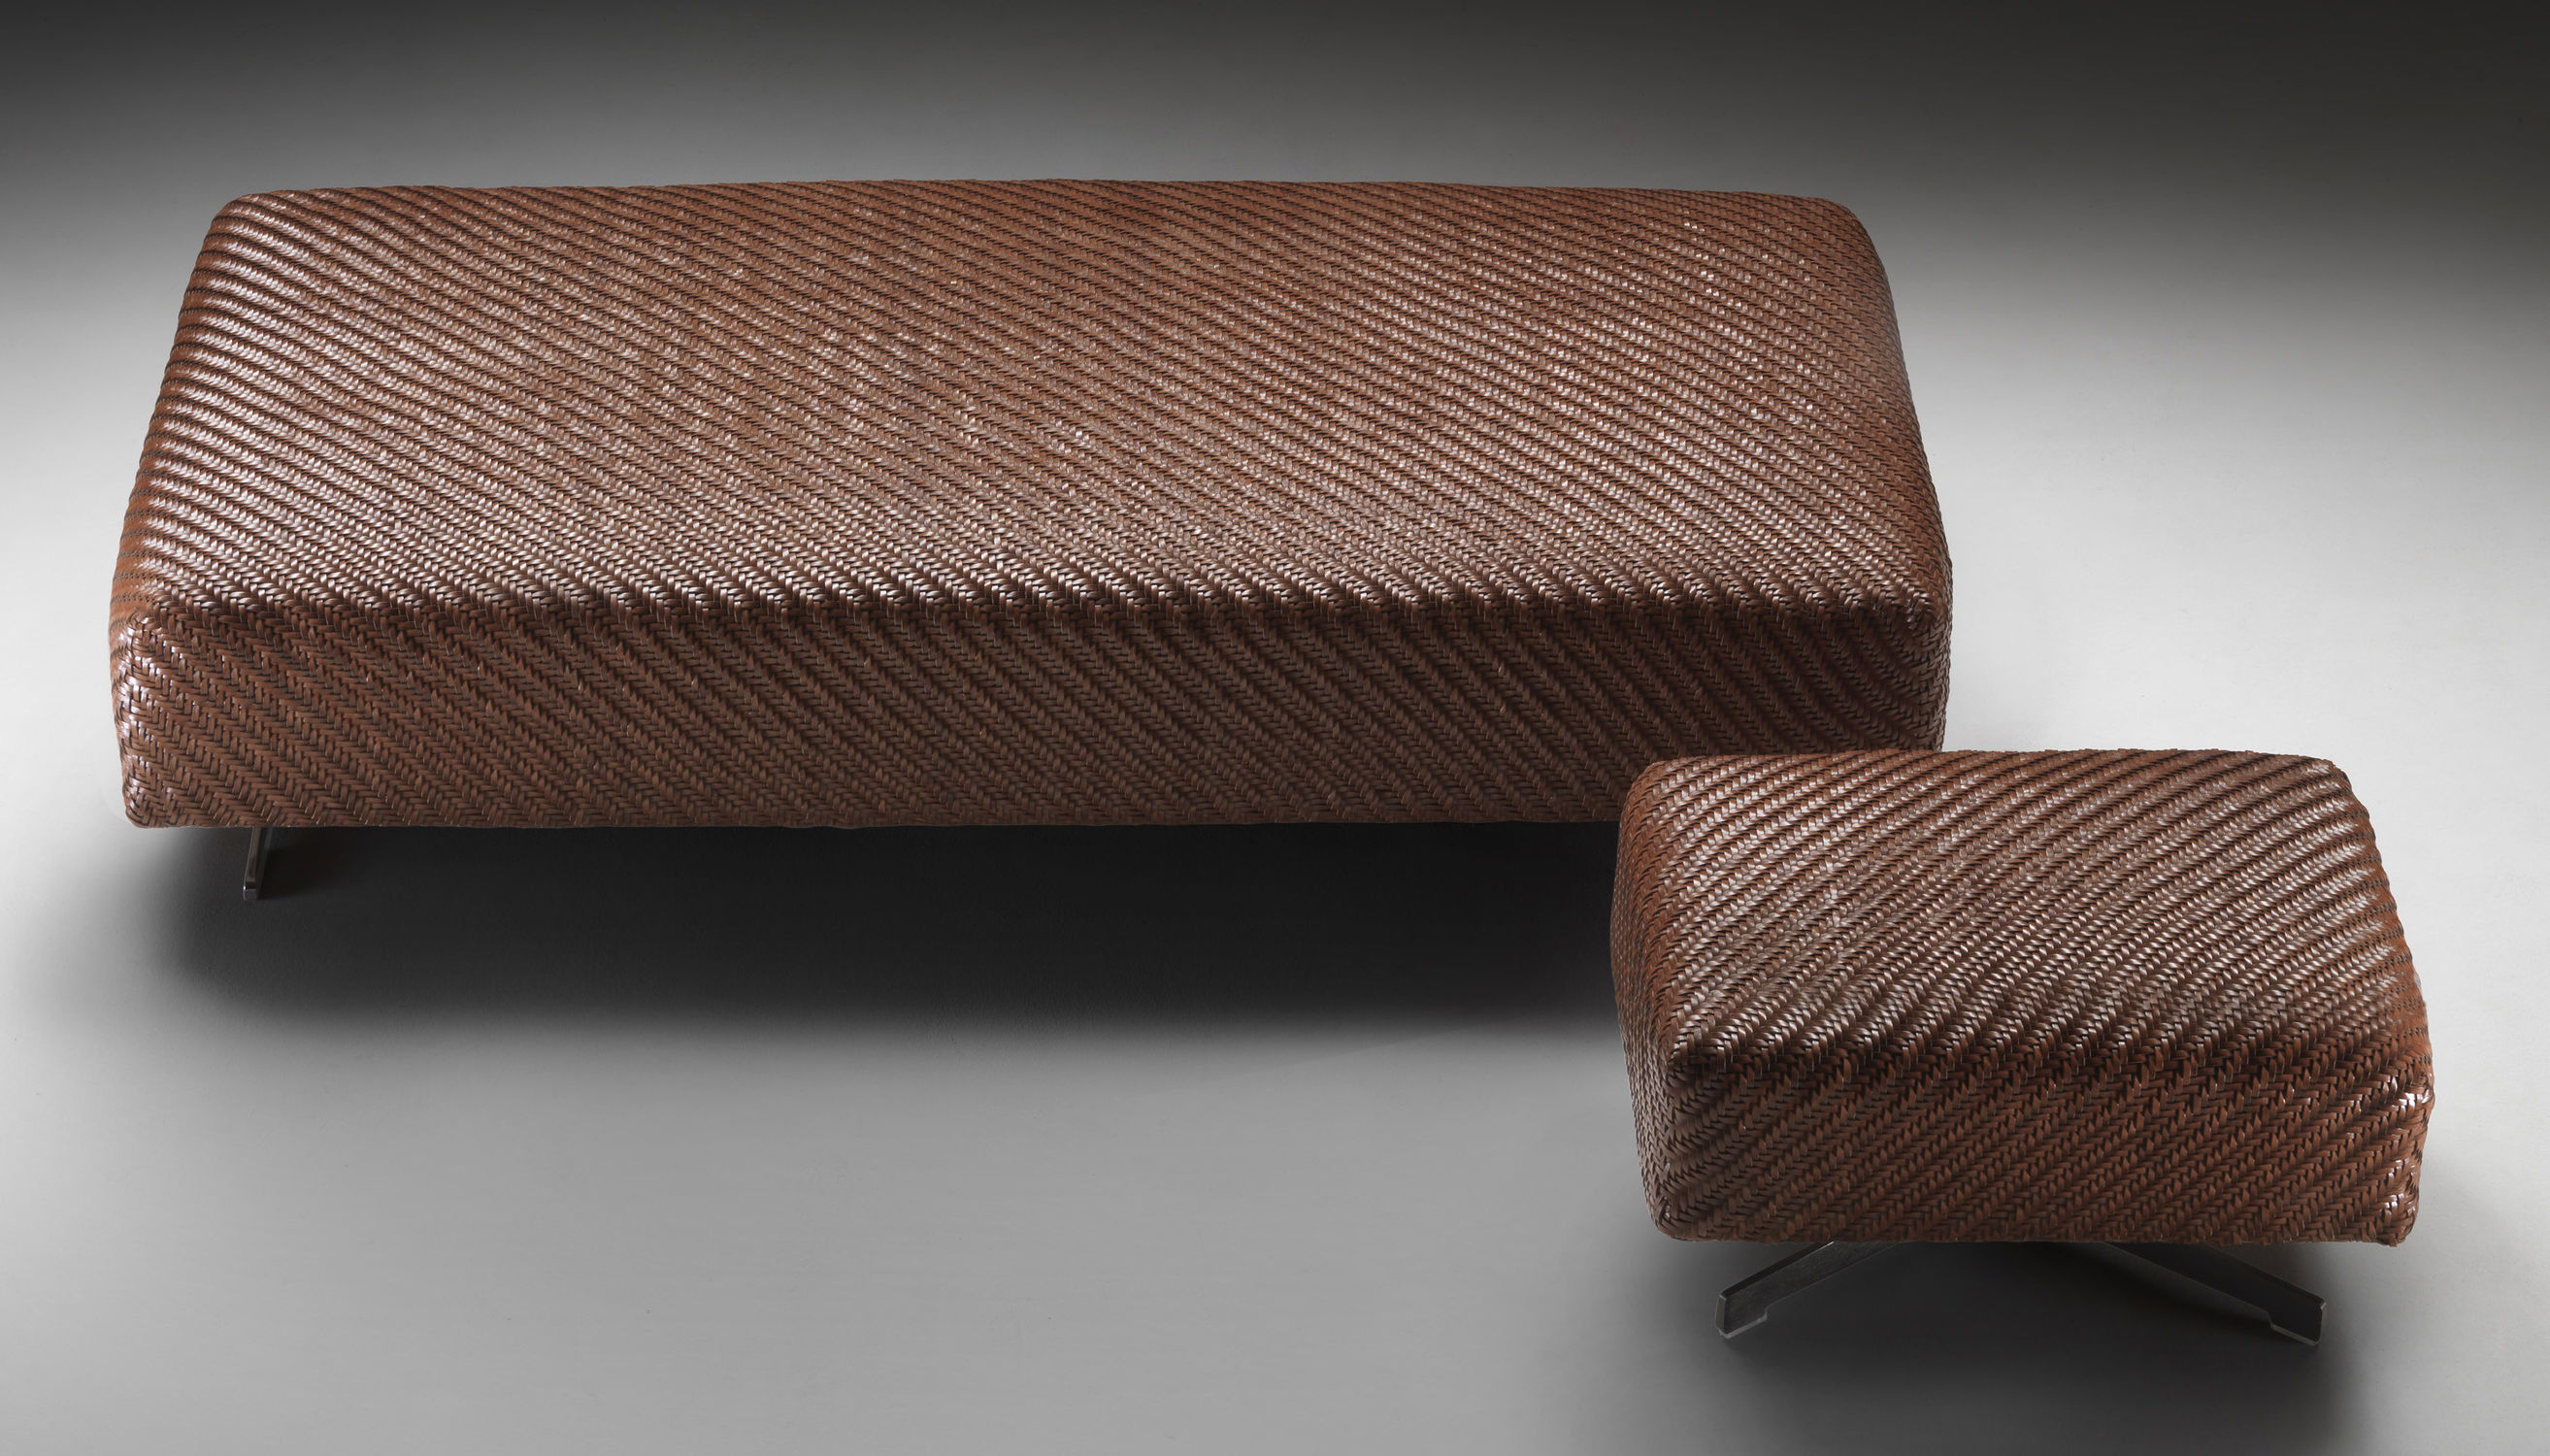 contemporary ottoman  fabric  leather  indoor  filicudi  flexform - contemporary ottoman  fabric  leather  indoor filicudi flexform